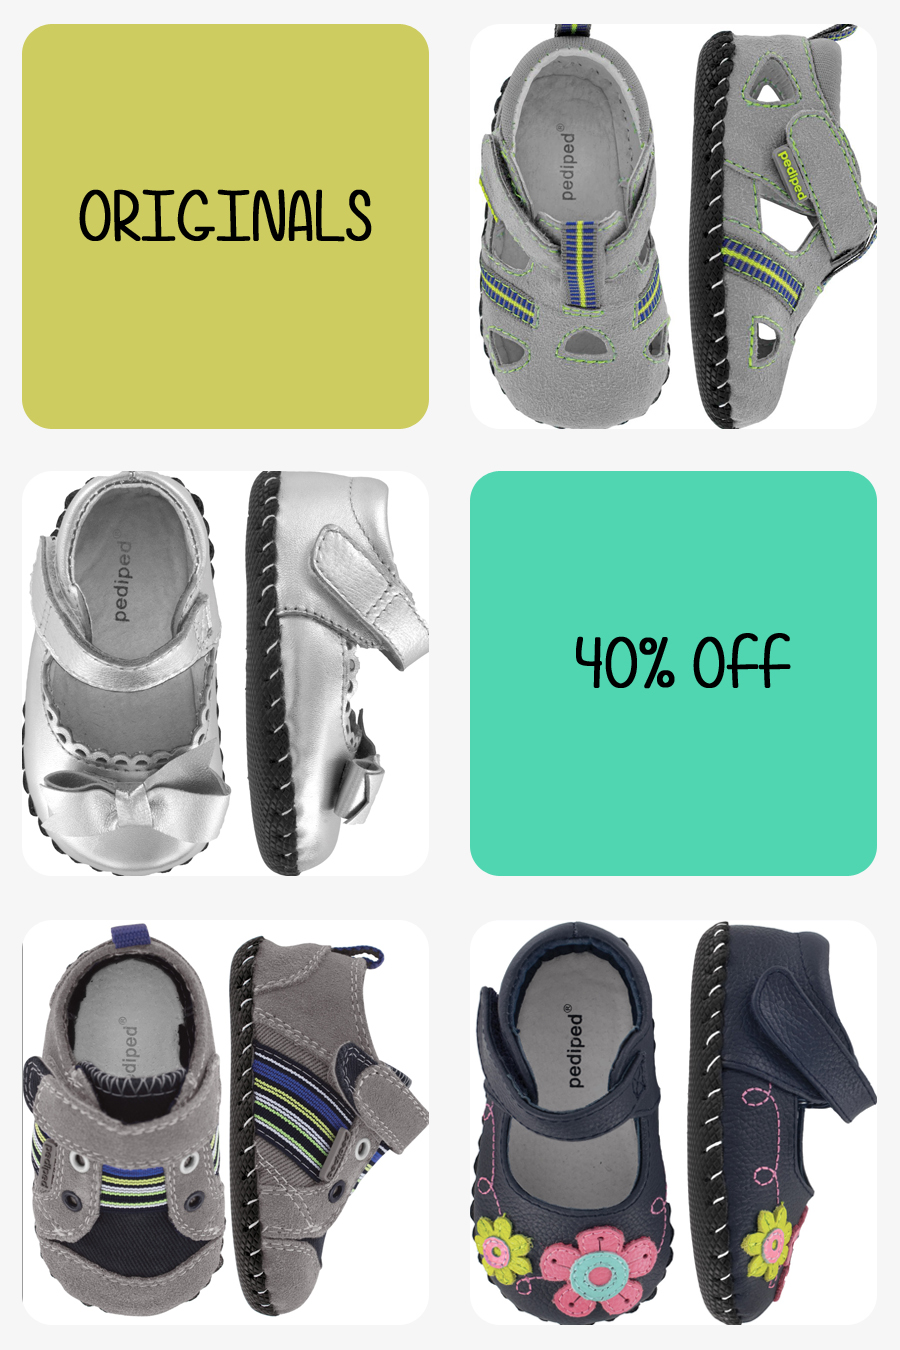 Pediped Shoe Clearance Sale at Elly